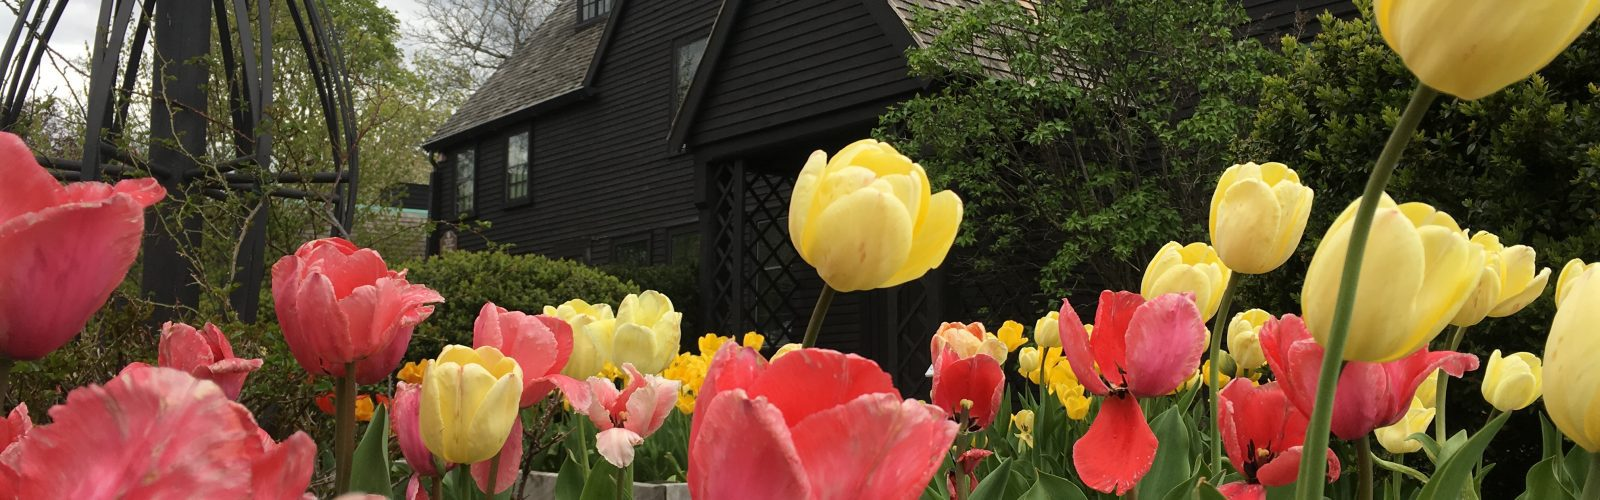 Tulips at The Gables Gardens